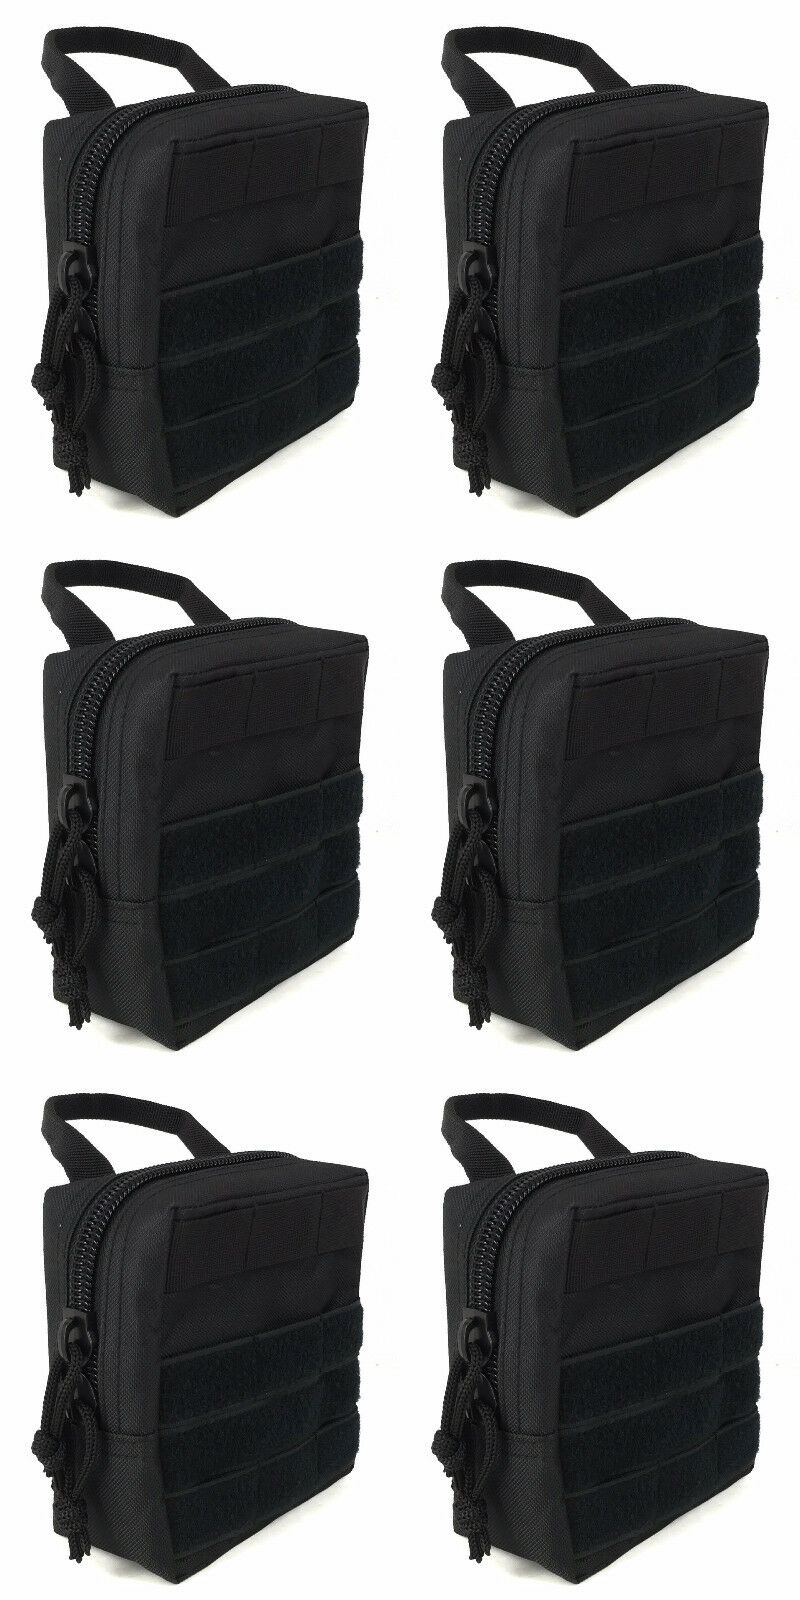 (6) AMMO 762X39 AMMO (6) MODULAR MOLLE UTILITY POUCHES FRONT HOOK LOOP STRAP .762 X 39 9d119e